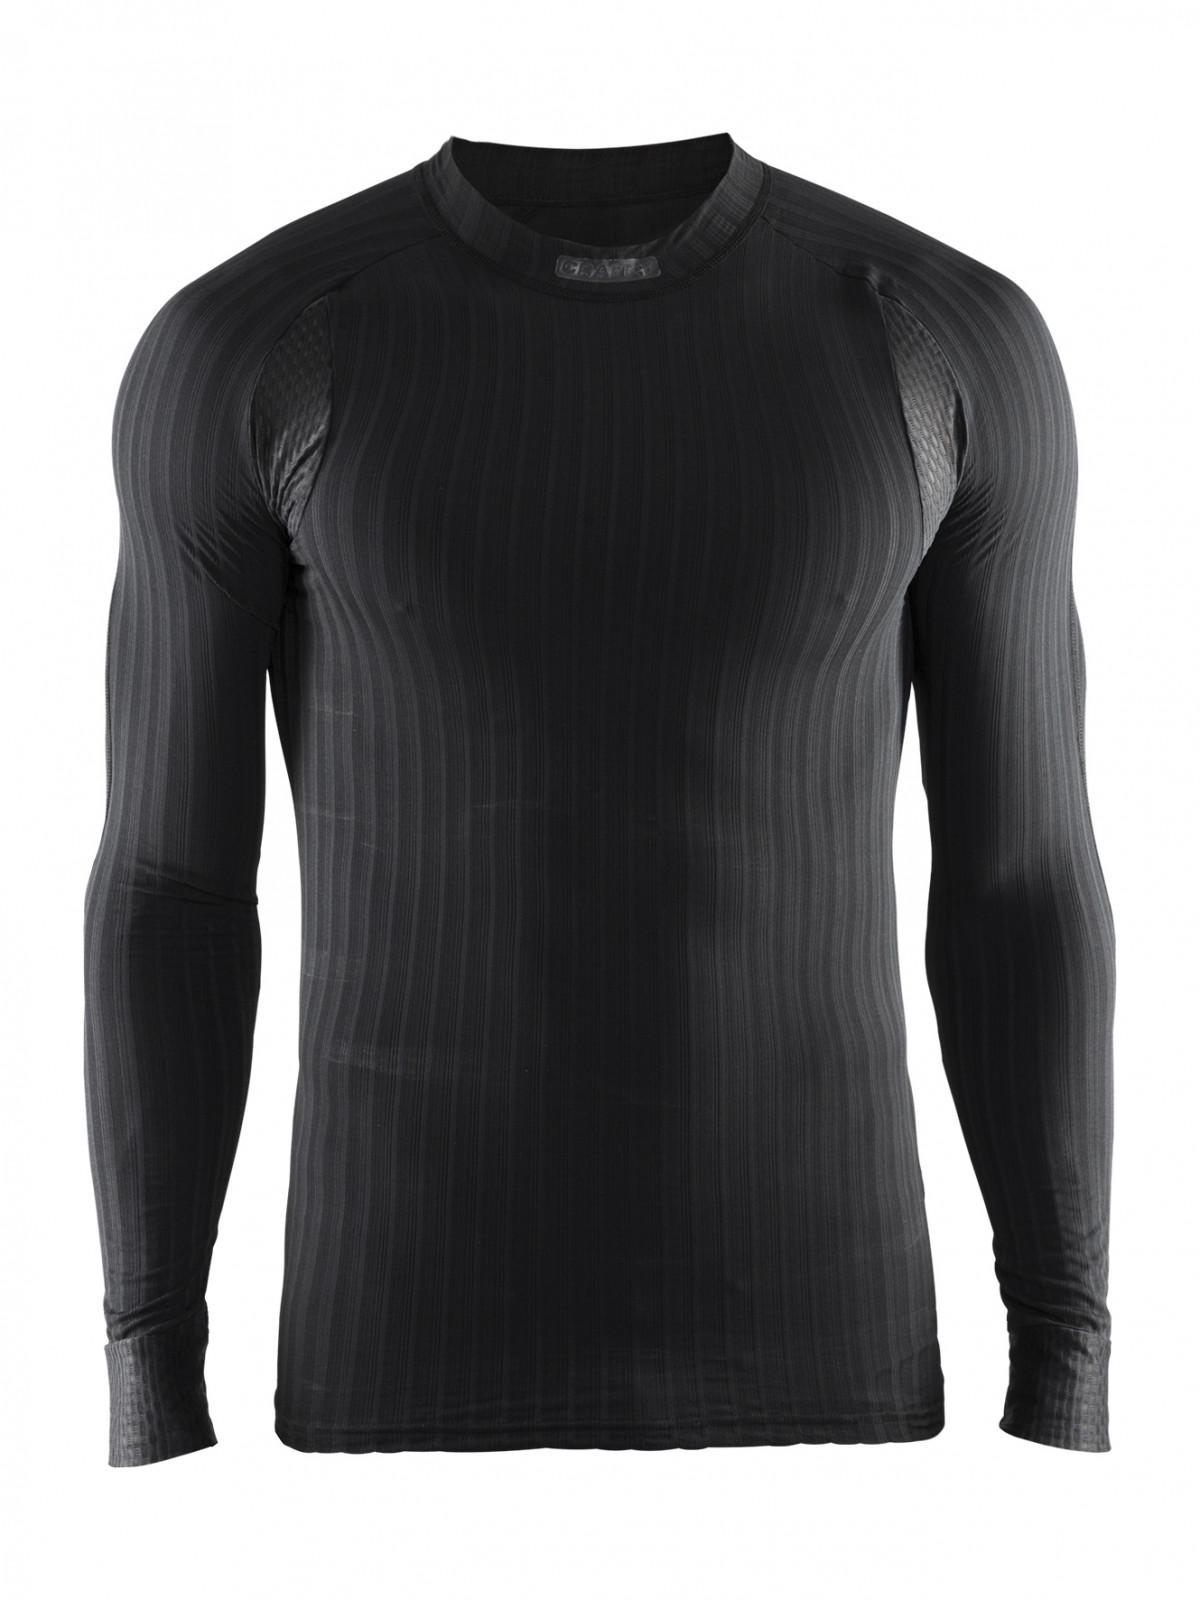 Термокофта чоловіча чорна Active Extreme 2.0 CN LS Men XL -> /media/download/1904495_s_9999-3101.jpg